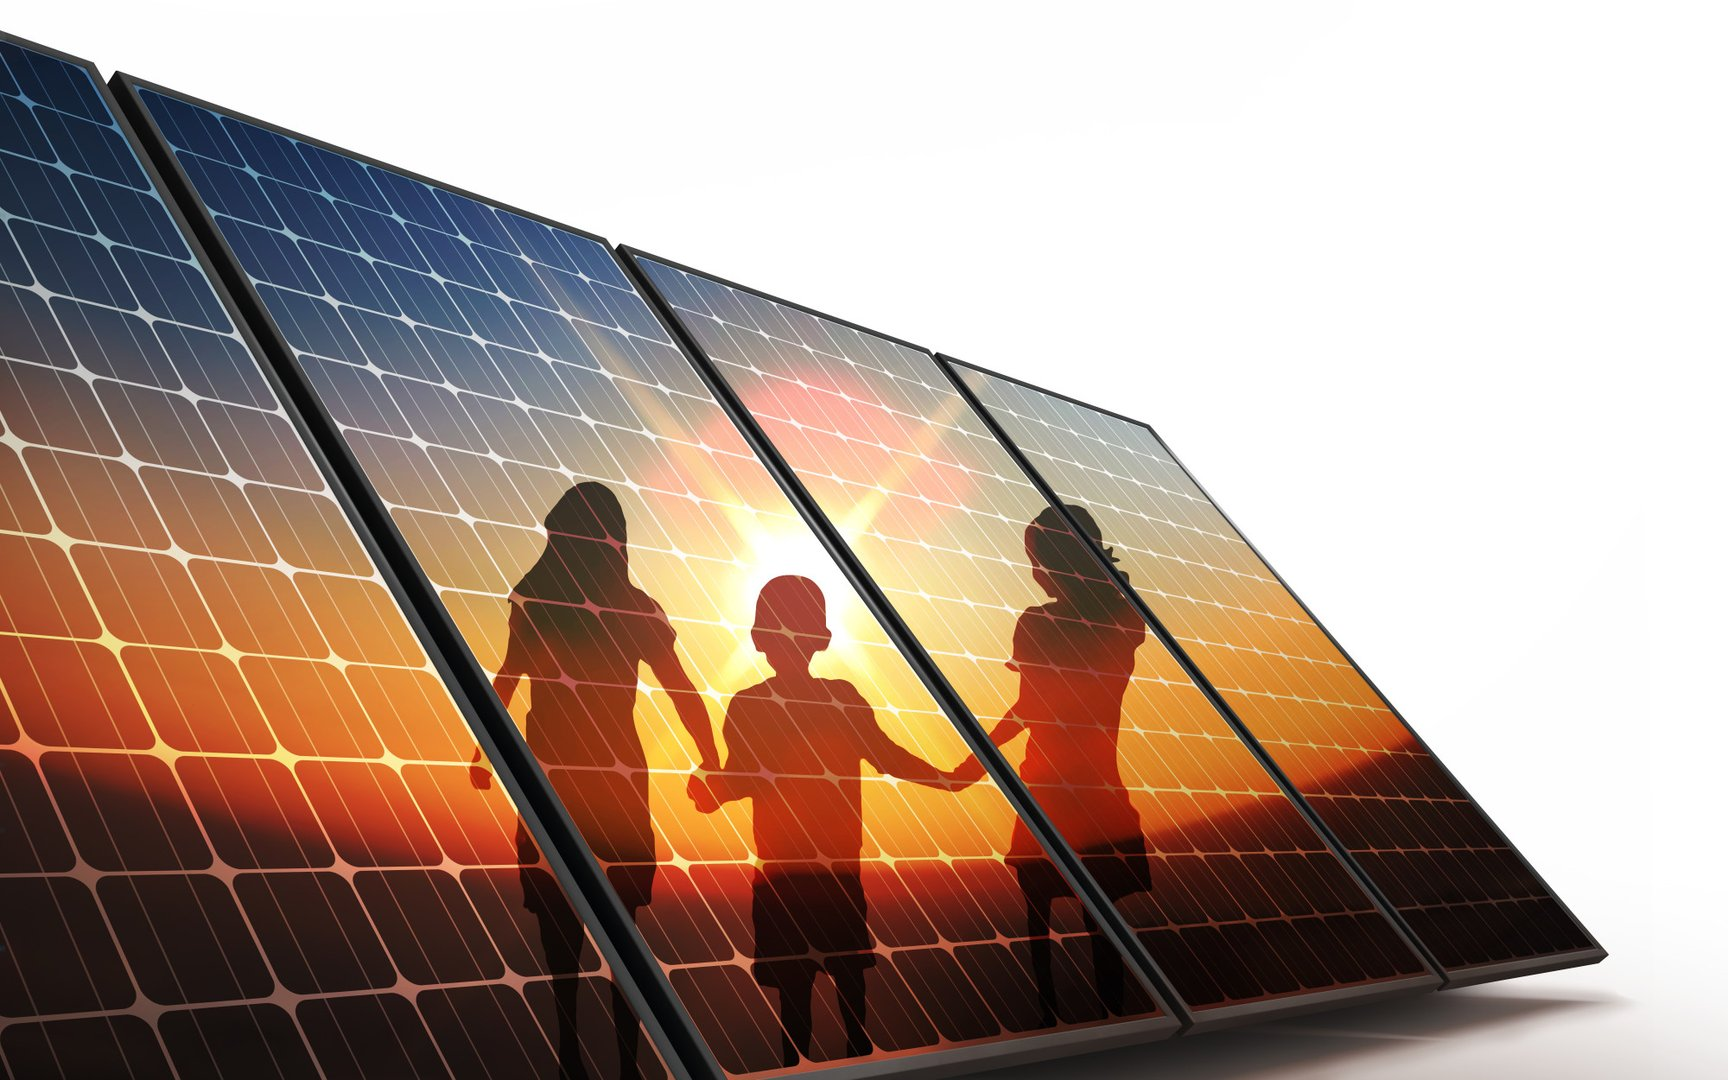 The key to the future of solar energy